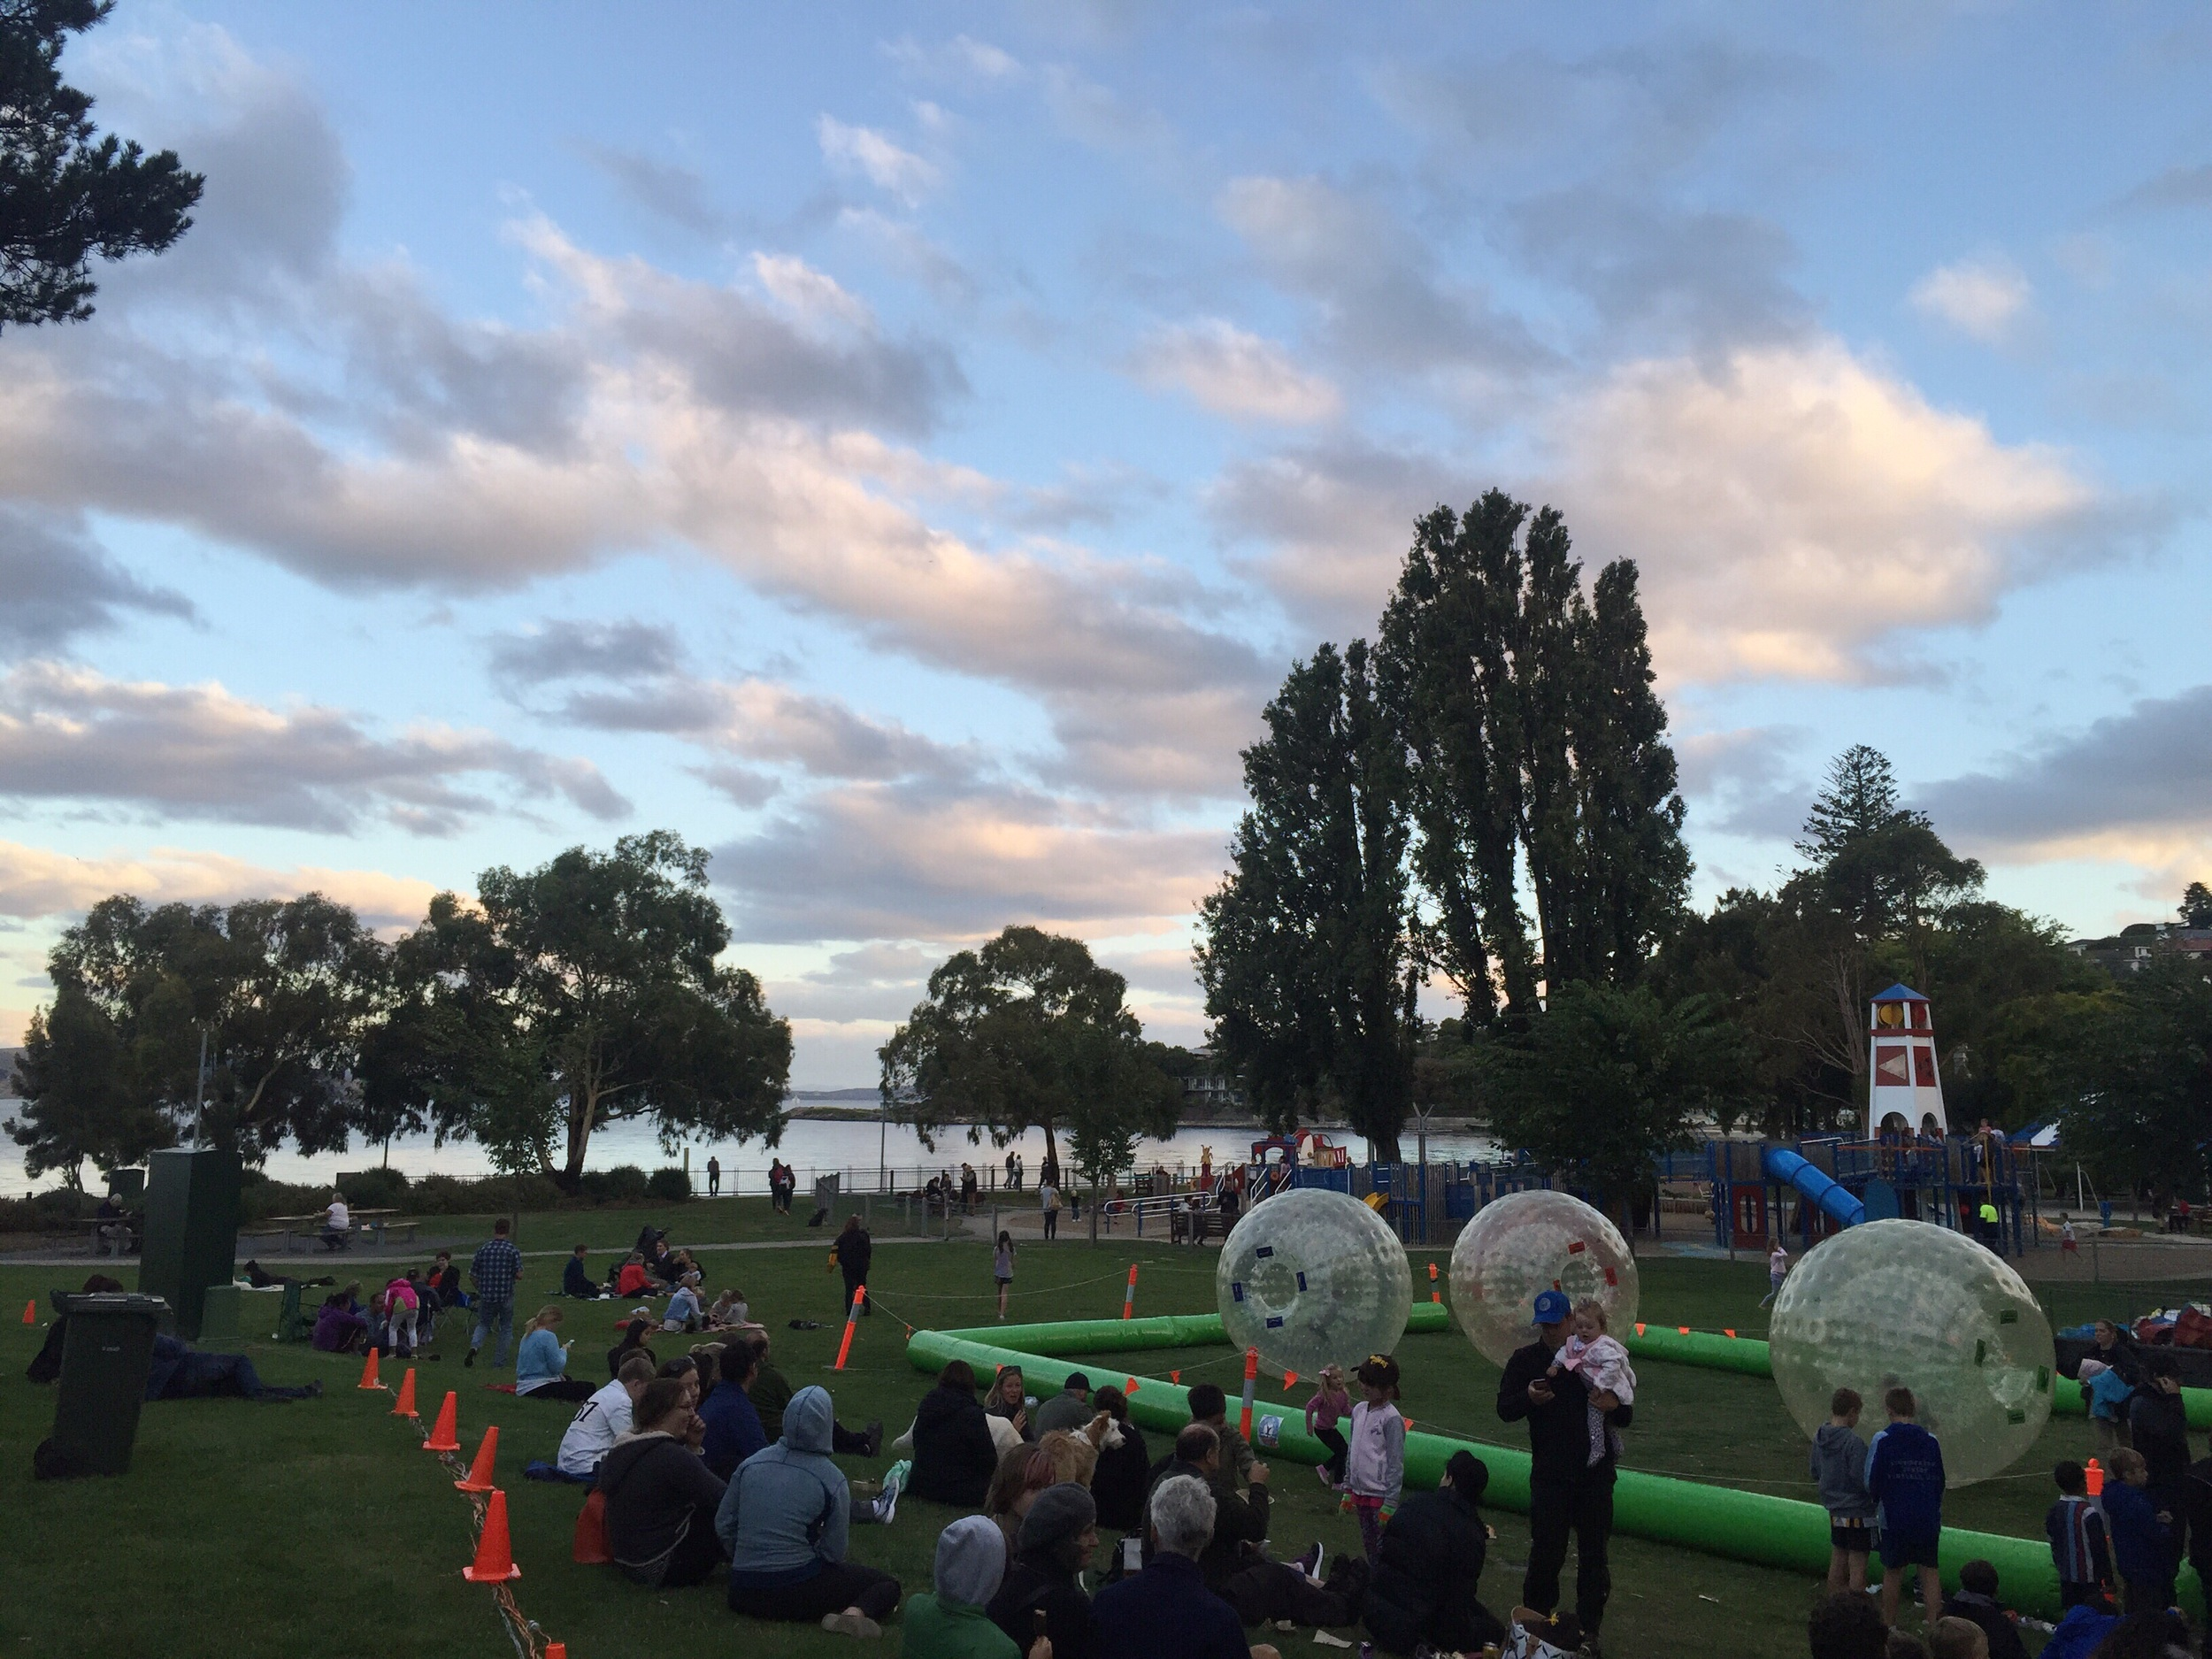 Tazorbs, playground, and picnic people